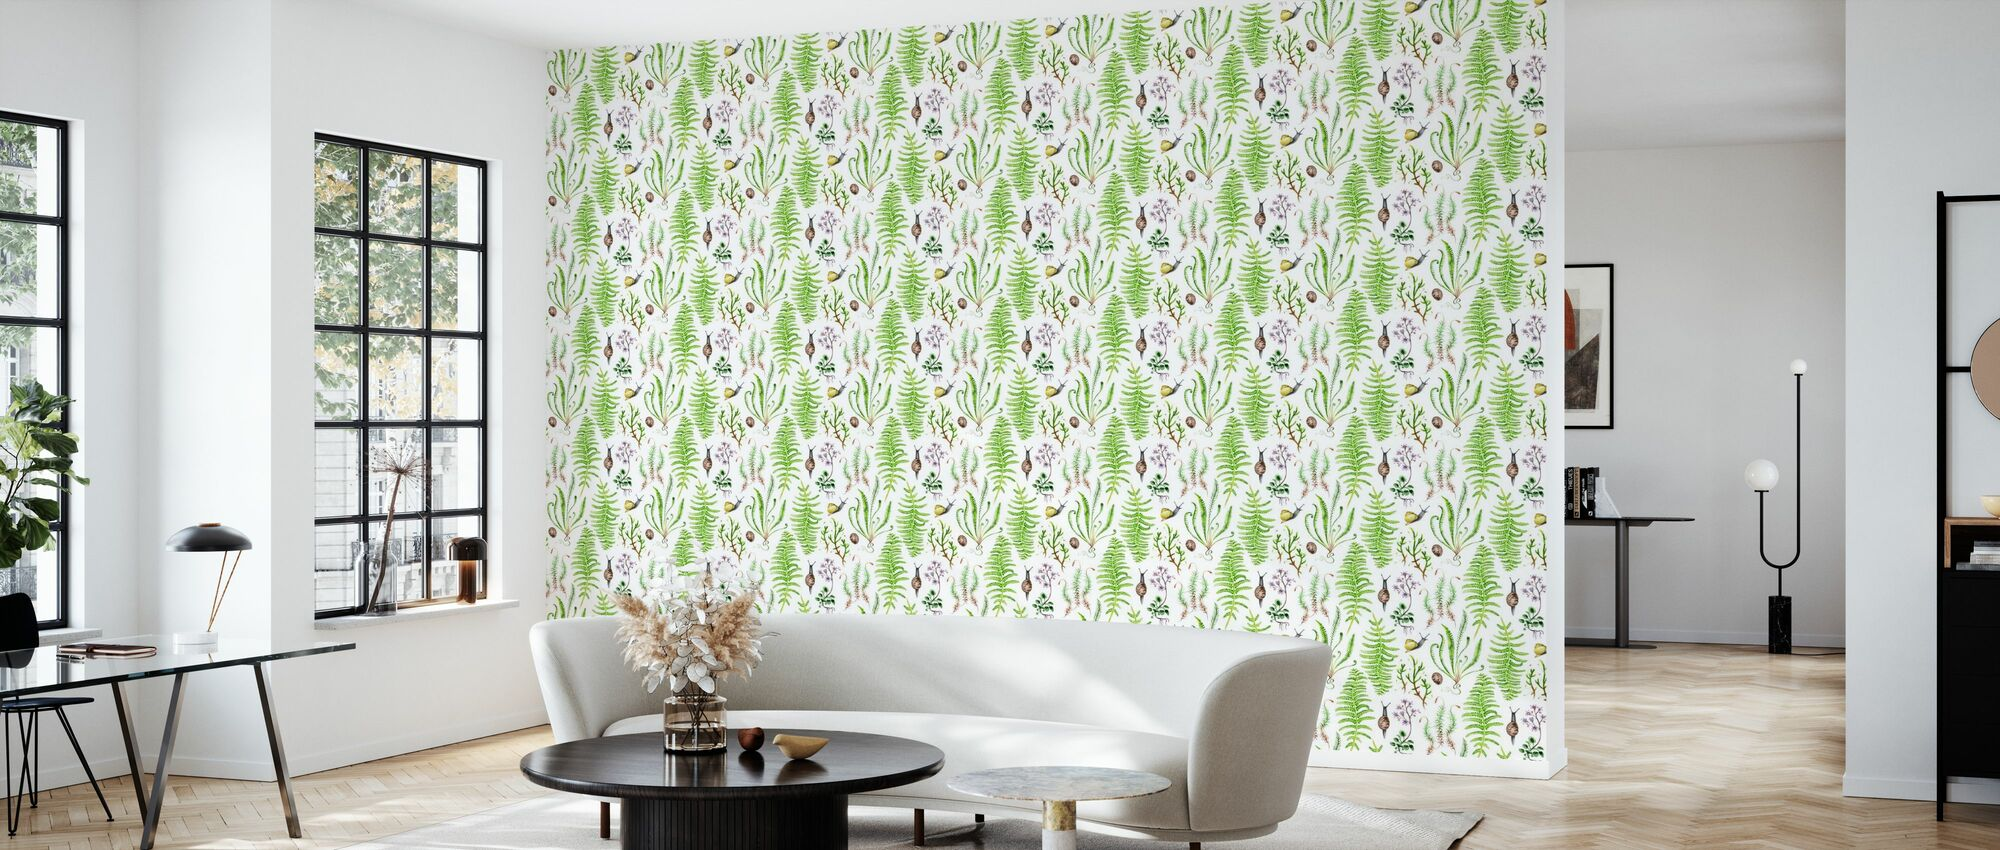 The Moss Garden After Rain - Wallpaper - Living Room